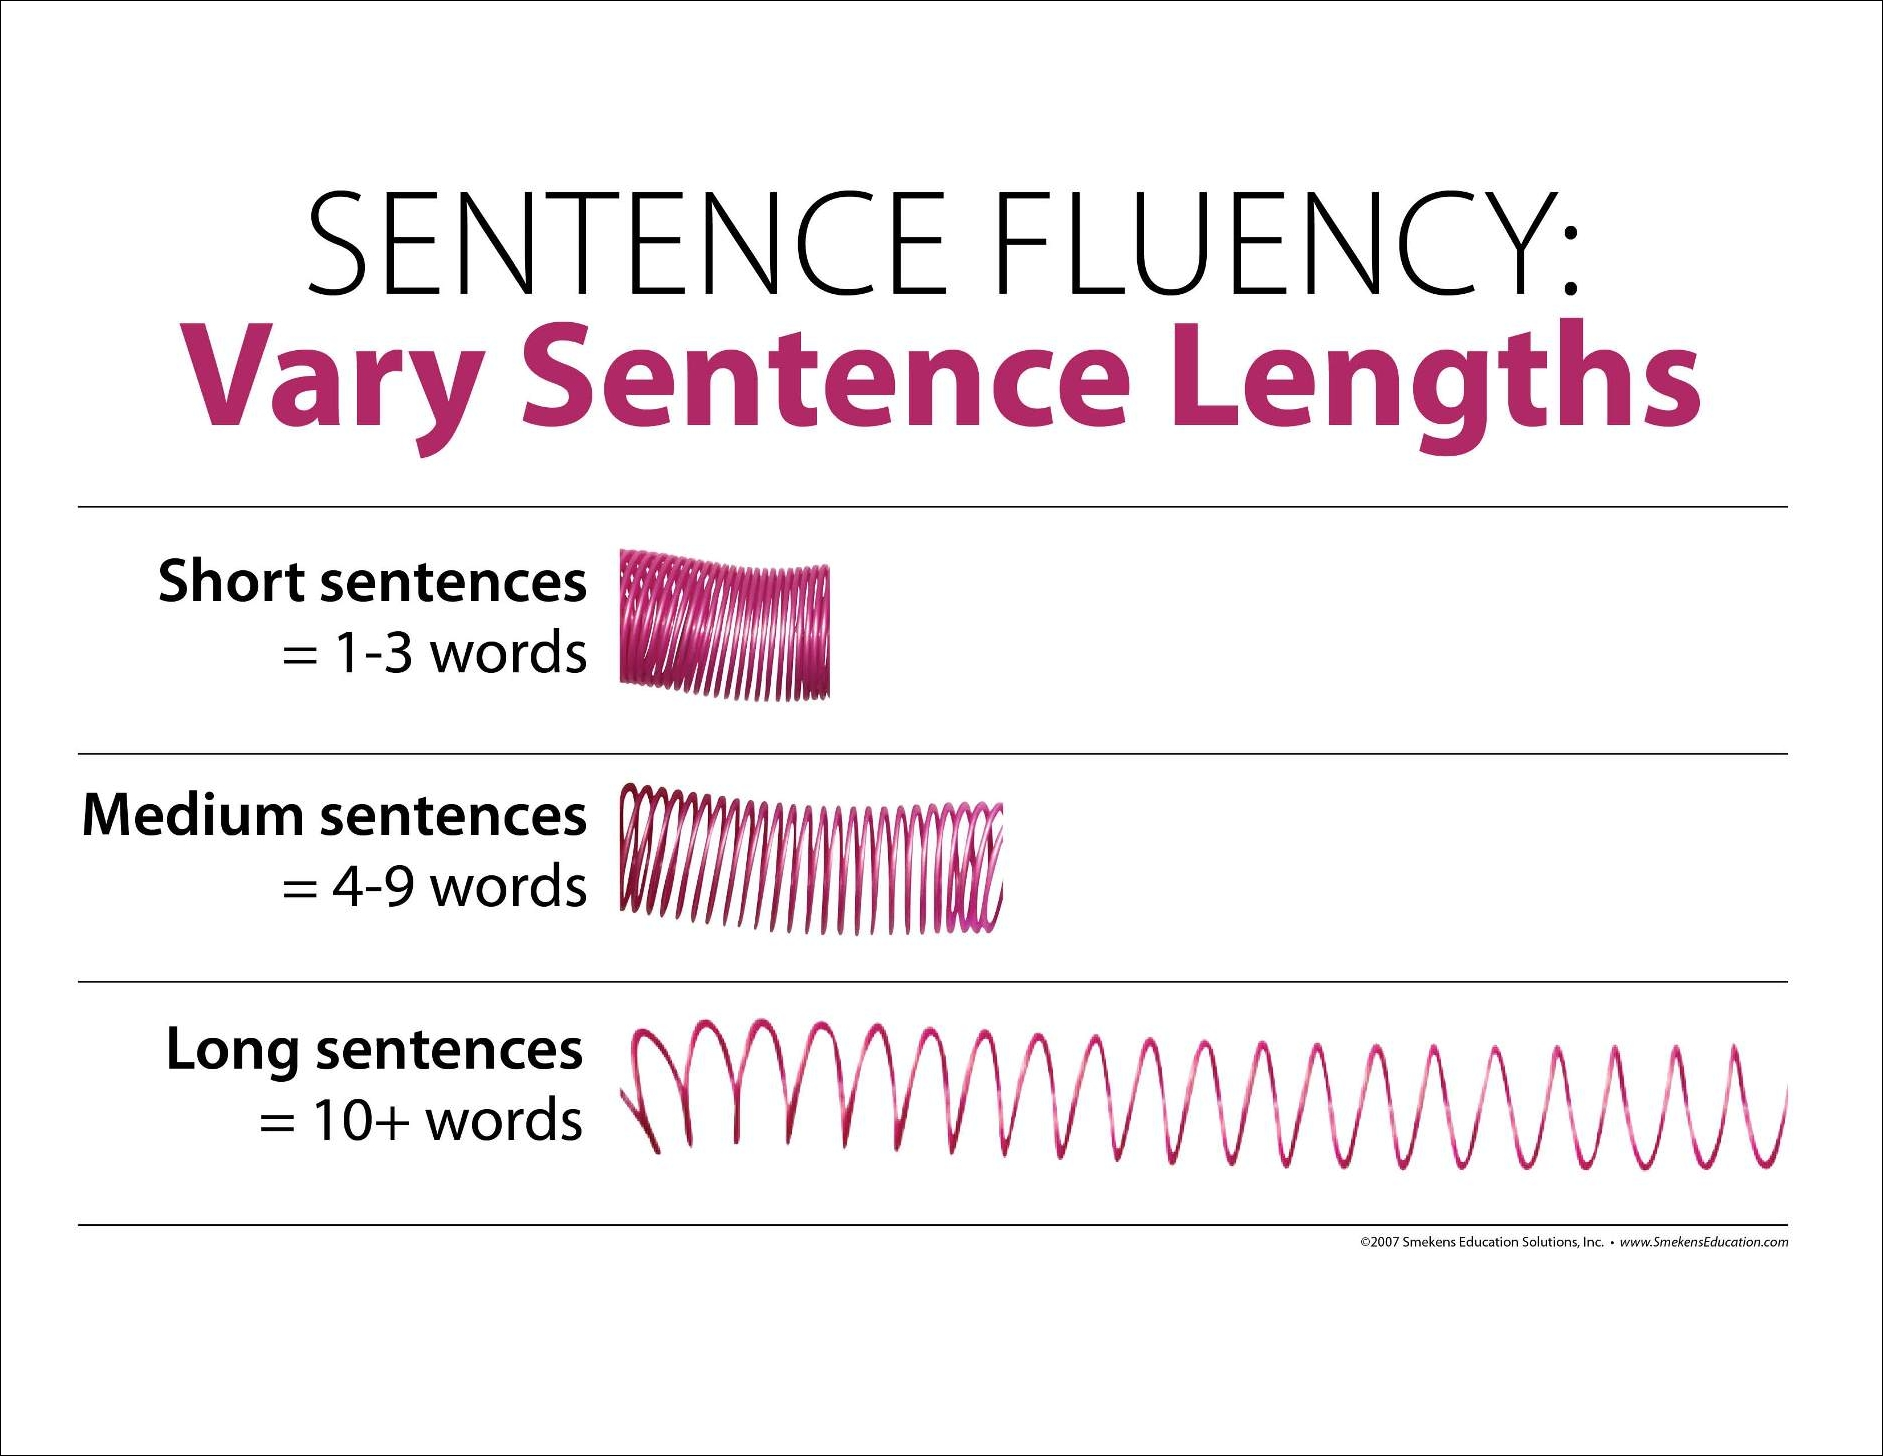 Sentence Fluency Vary Sentence Lengths Slinky Test